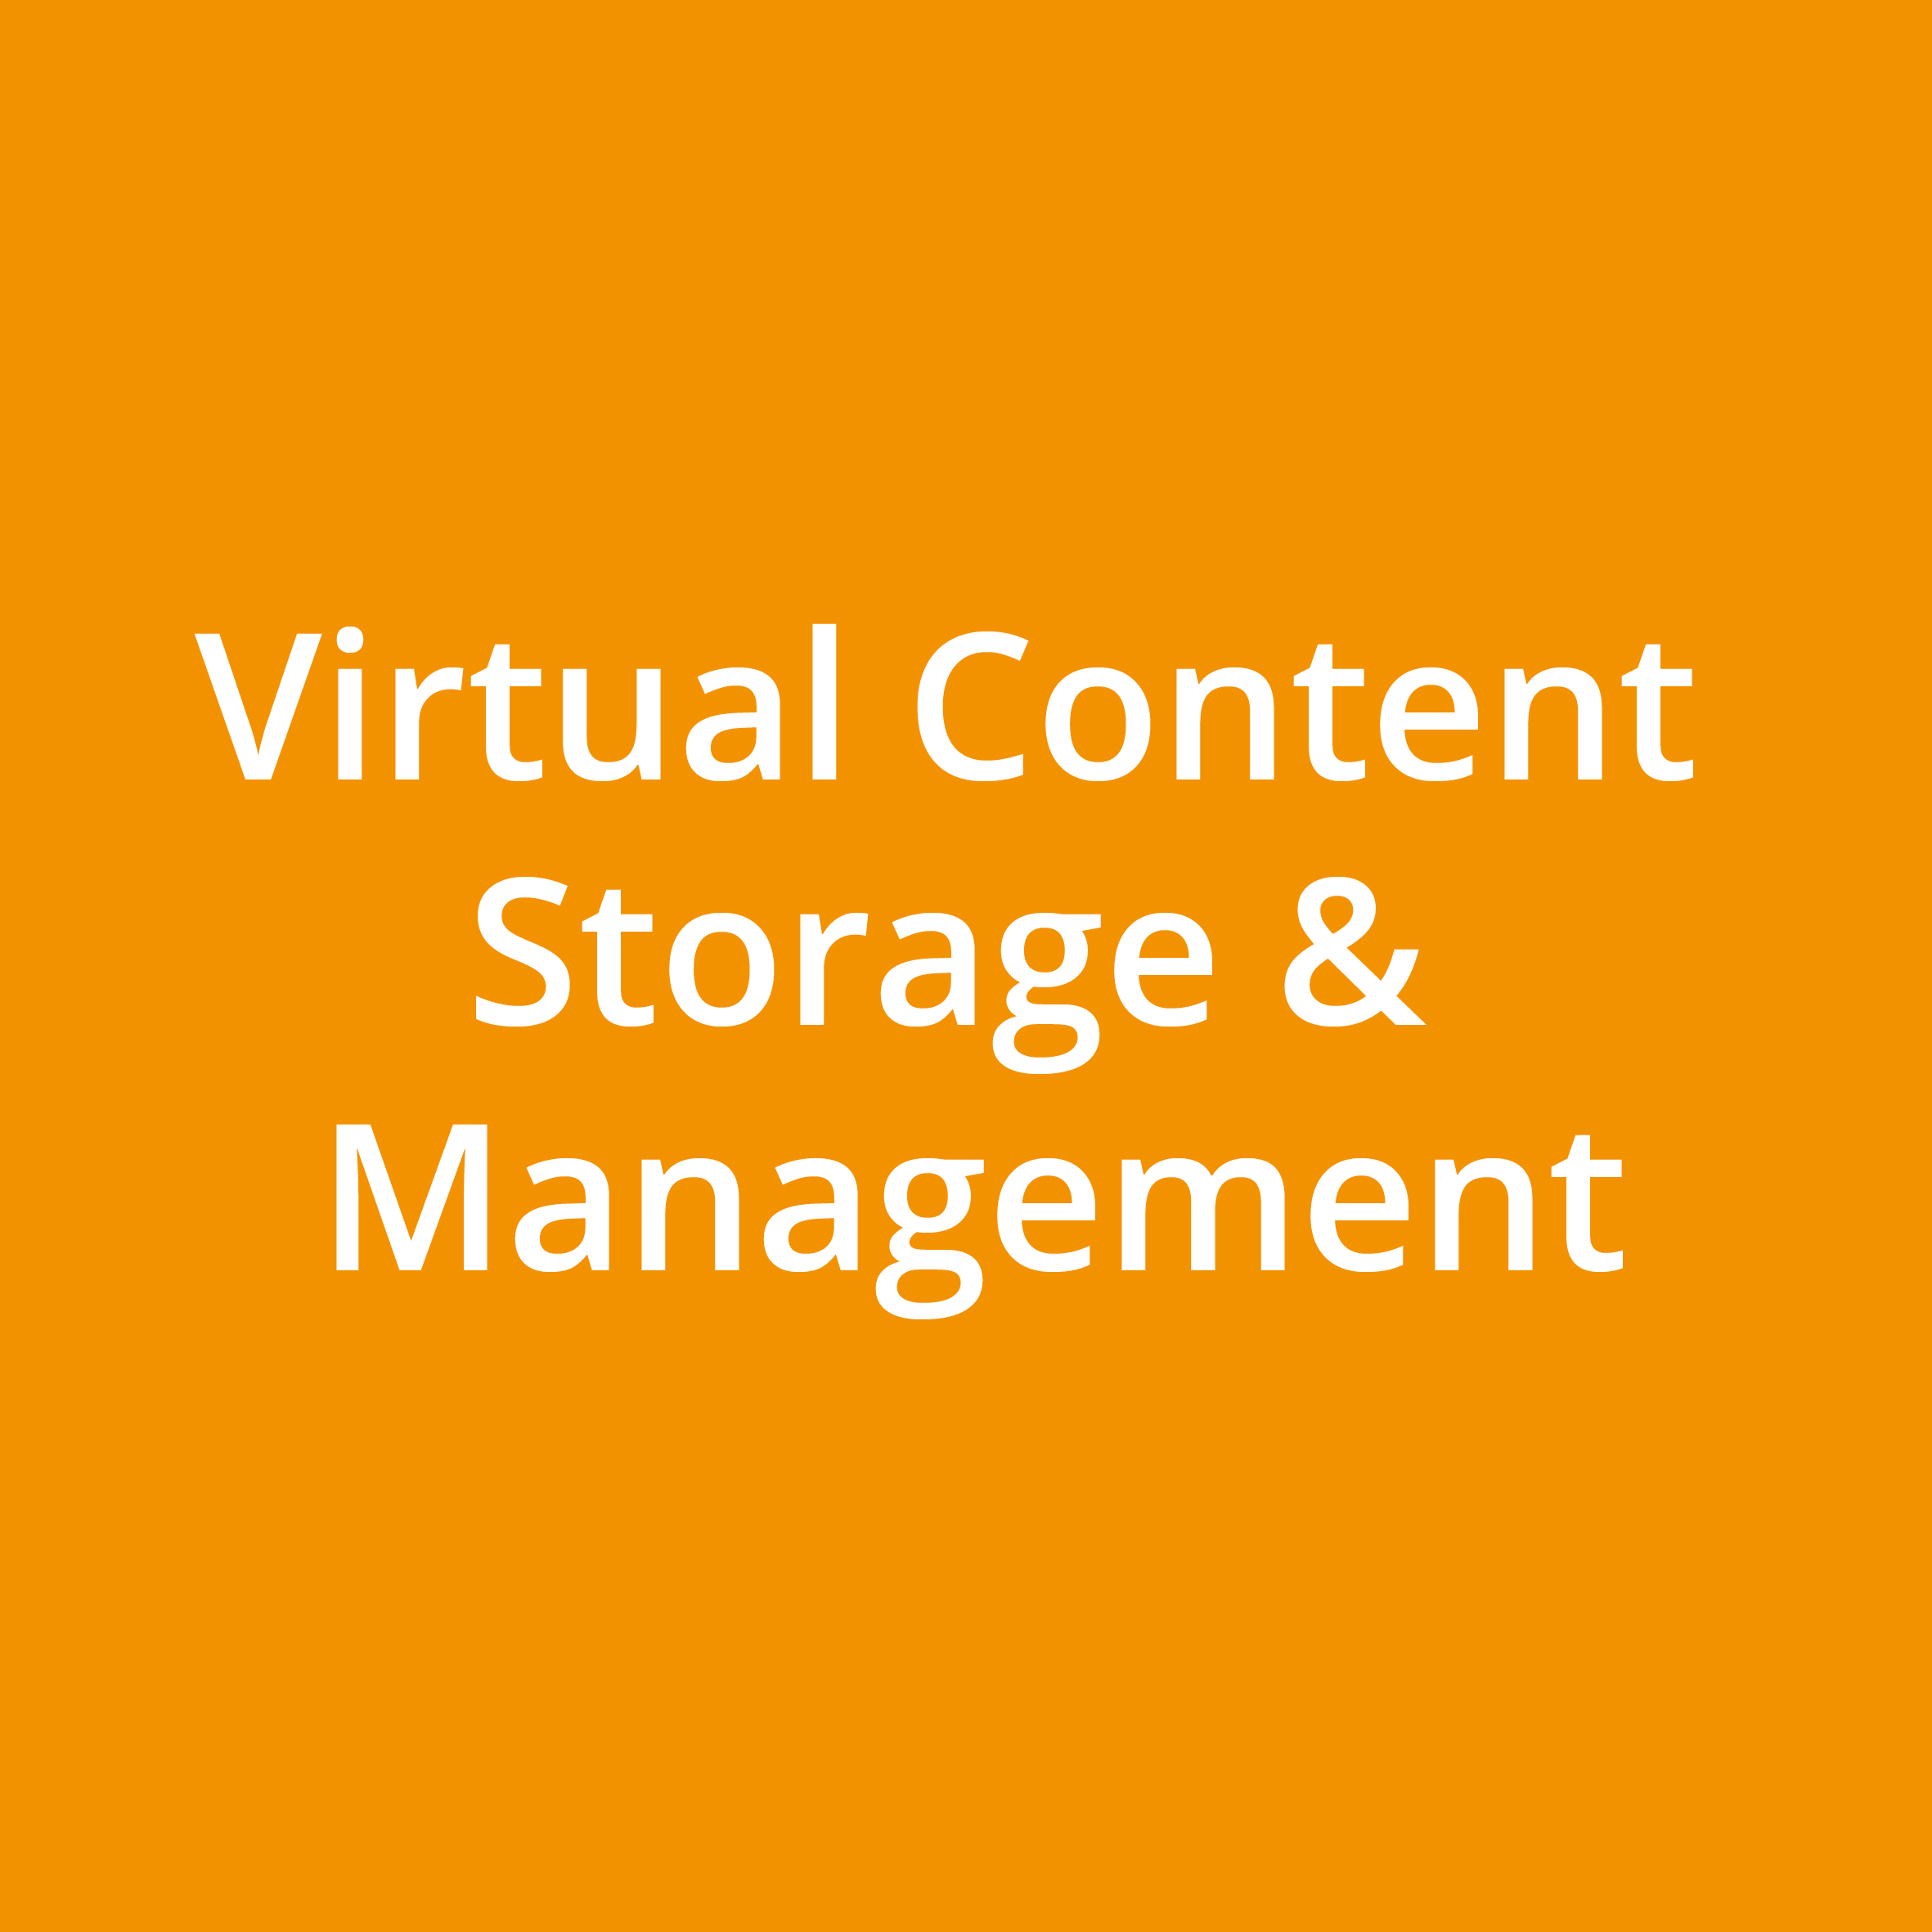 Virtual Content Storage & Management